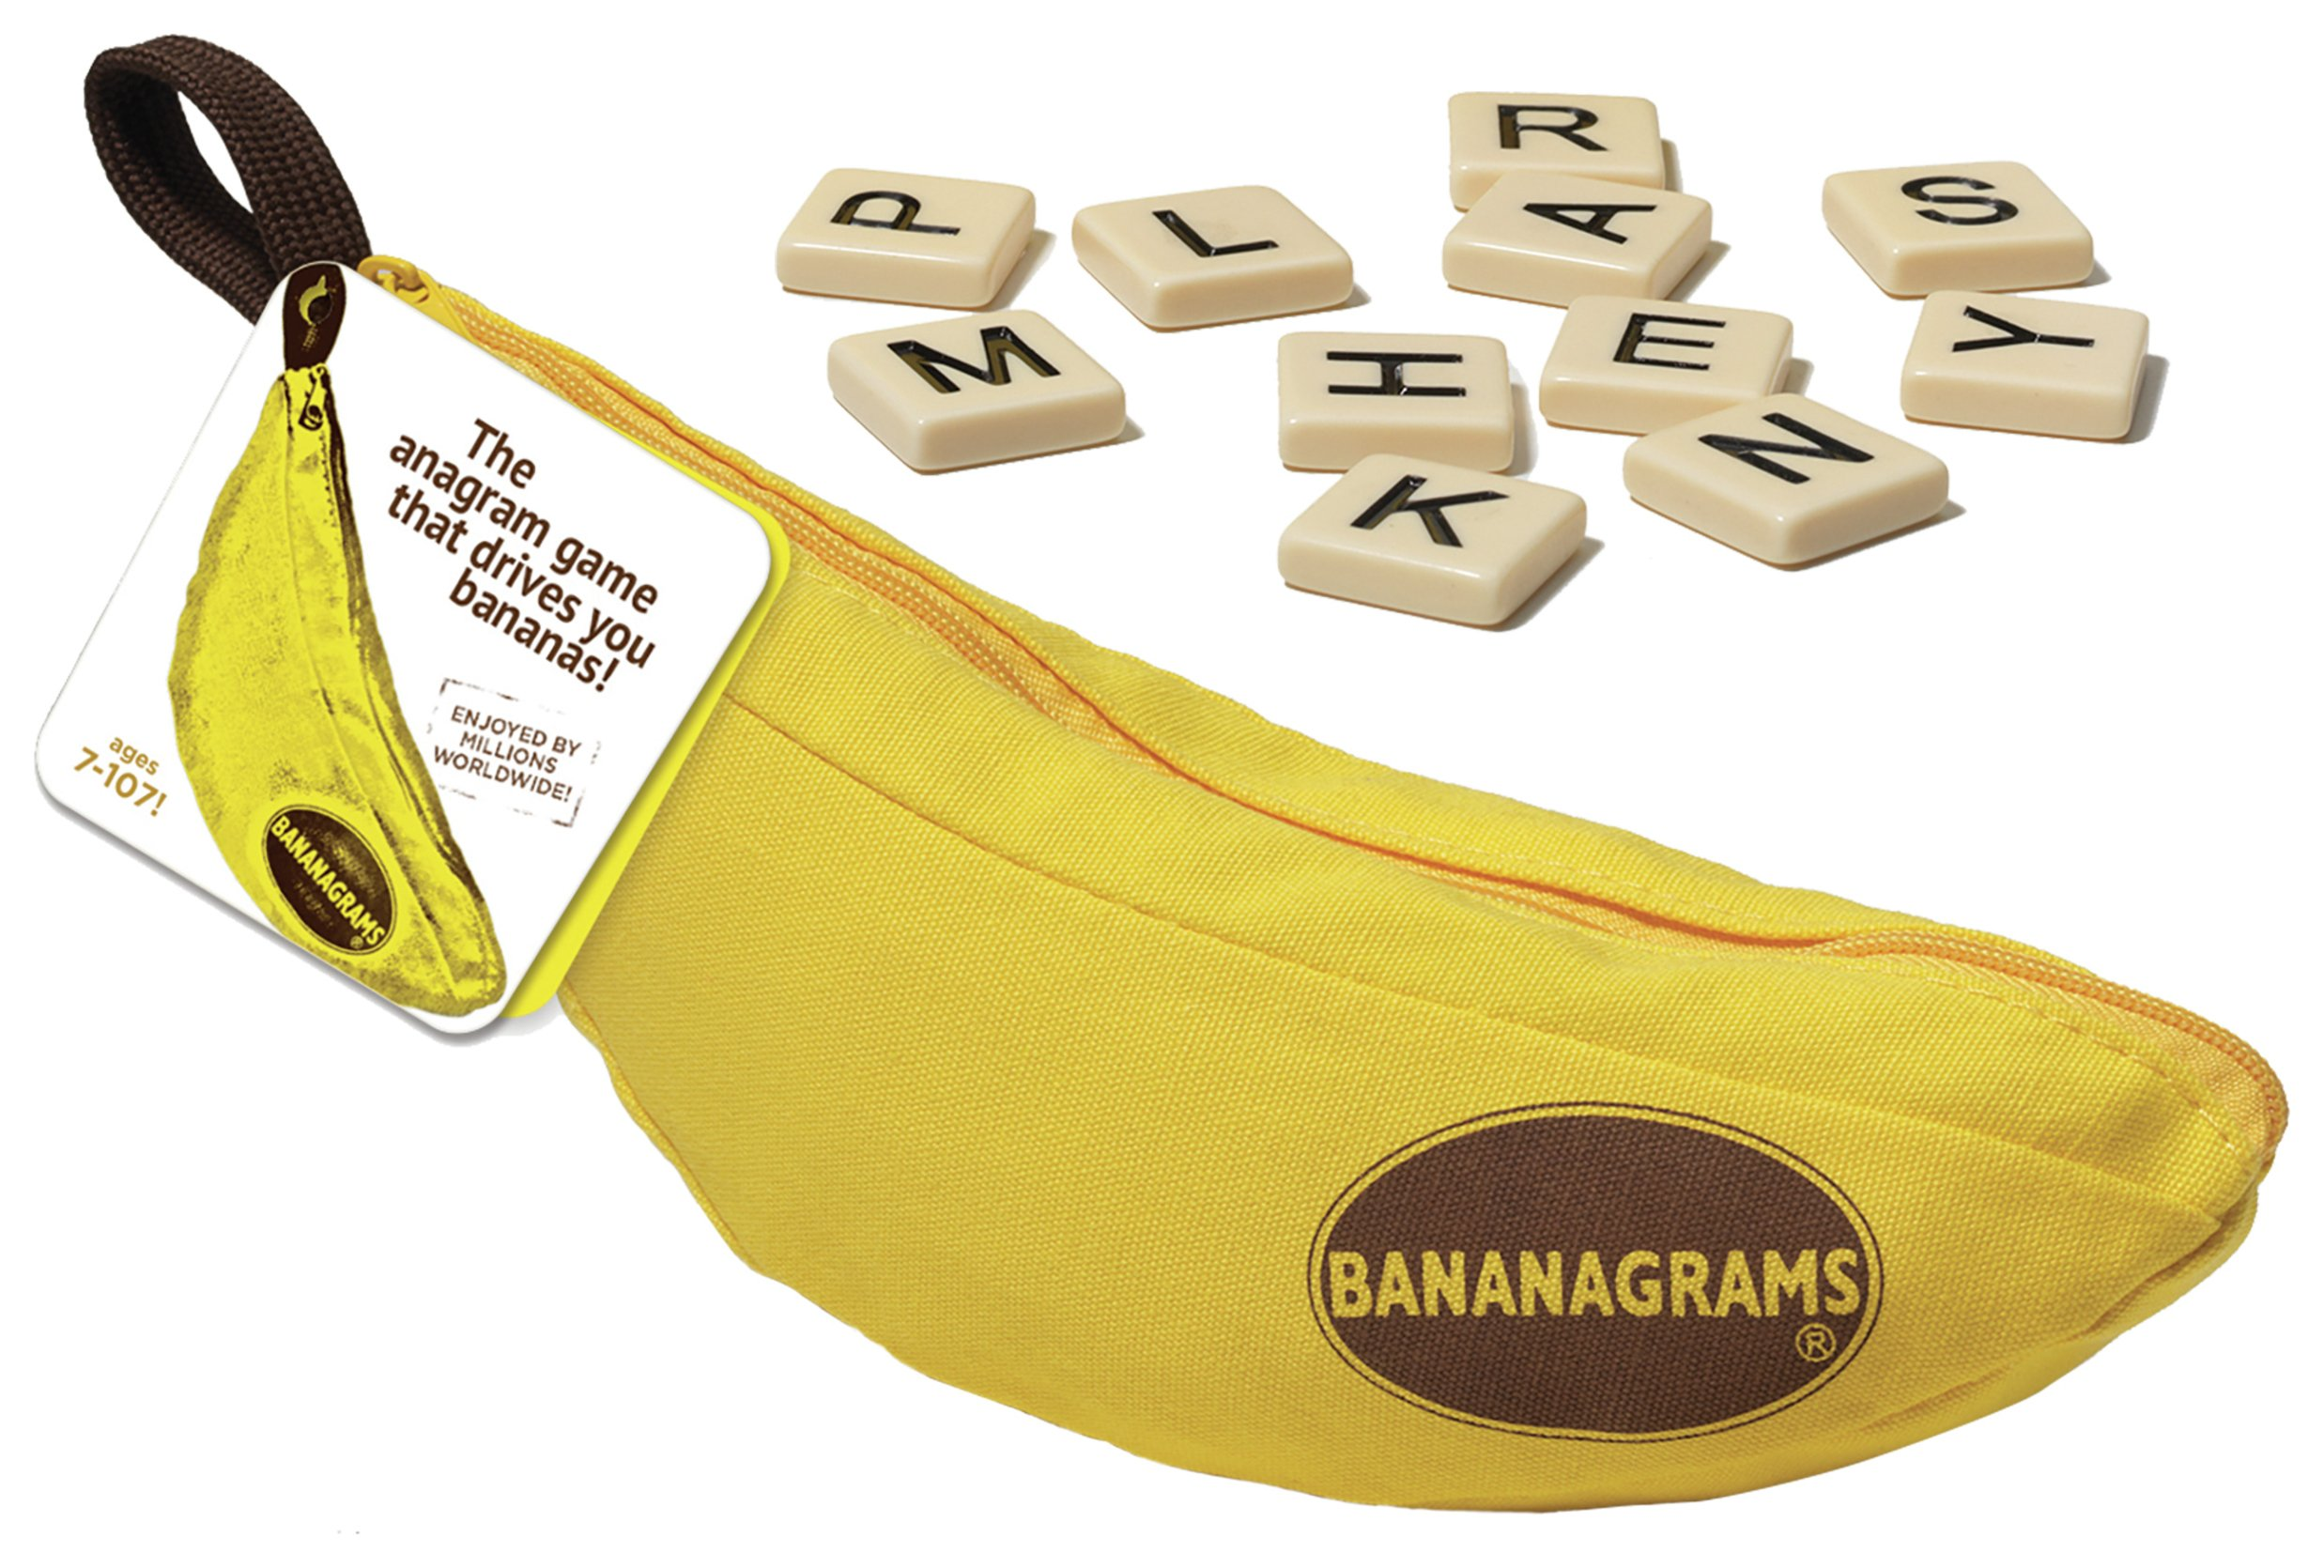 Image of Bananagrams Word Game.